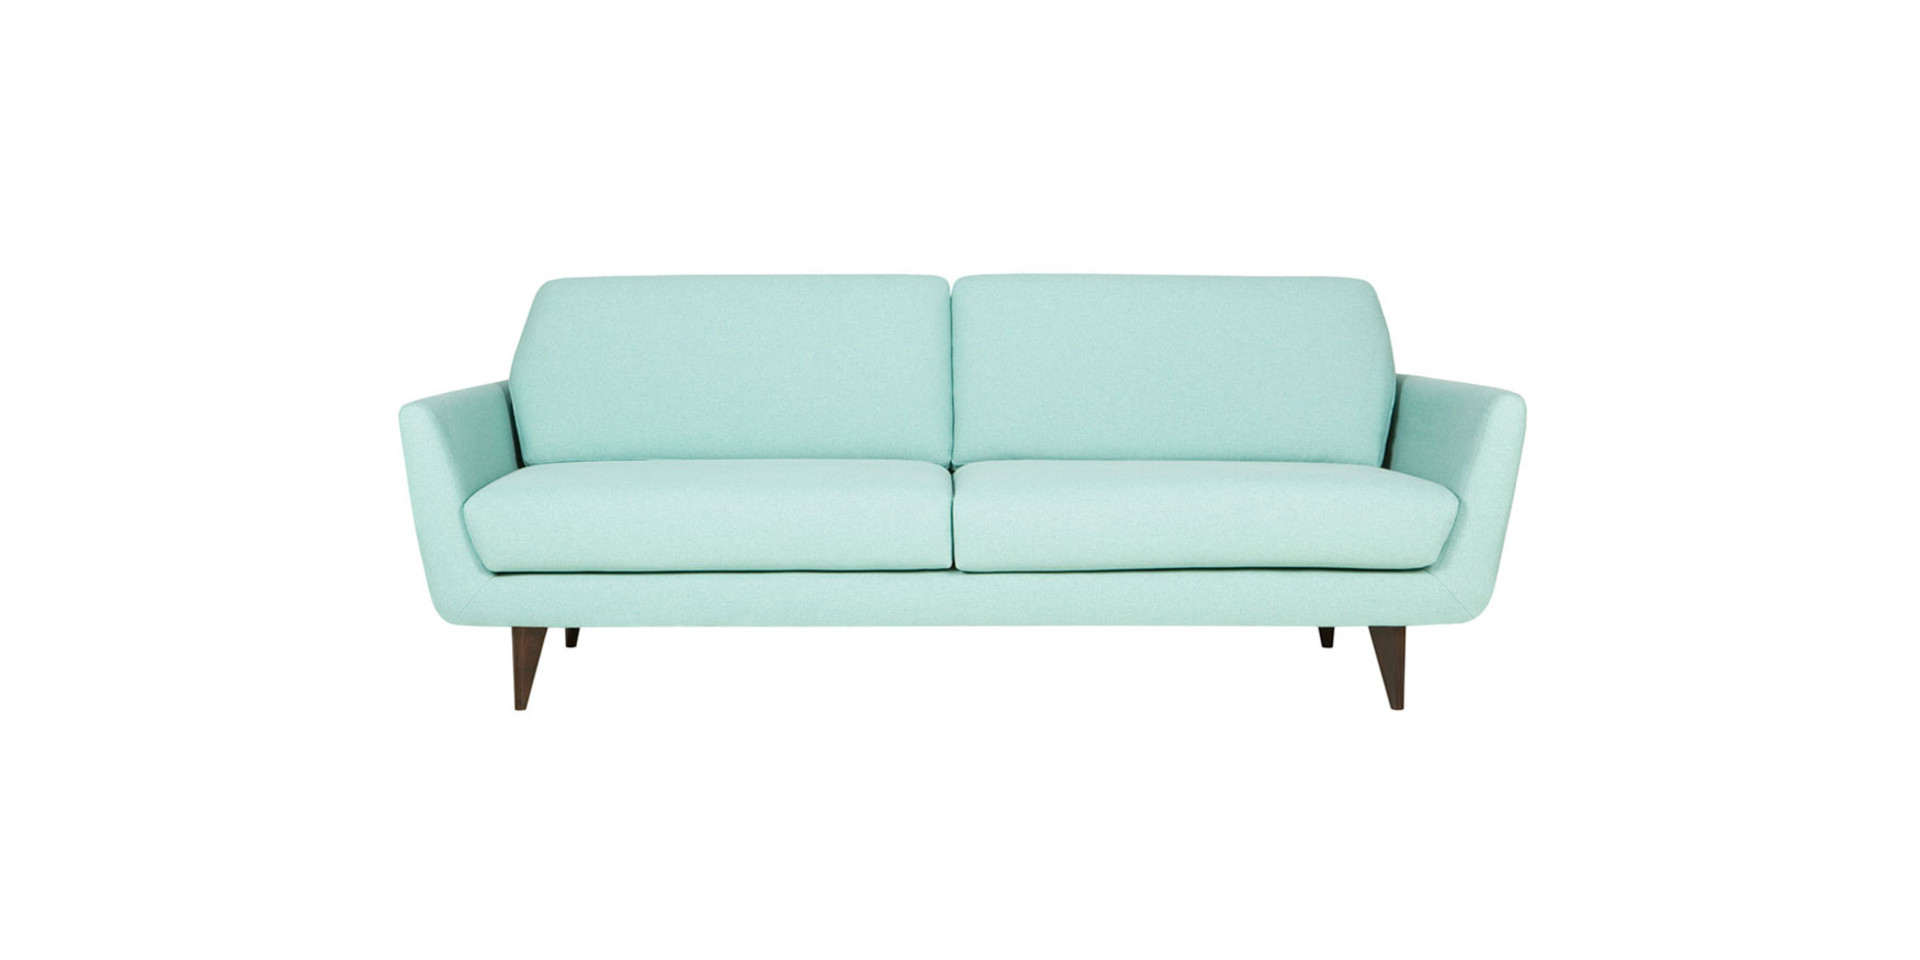 sits-rucola-canape-3seater_luis37_turquoise_1